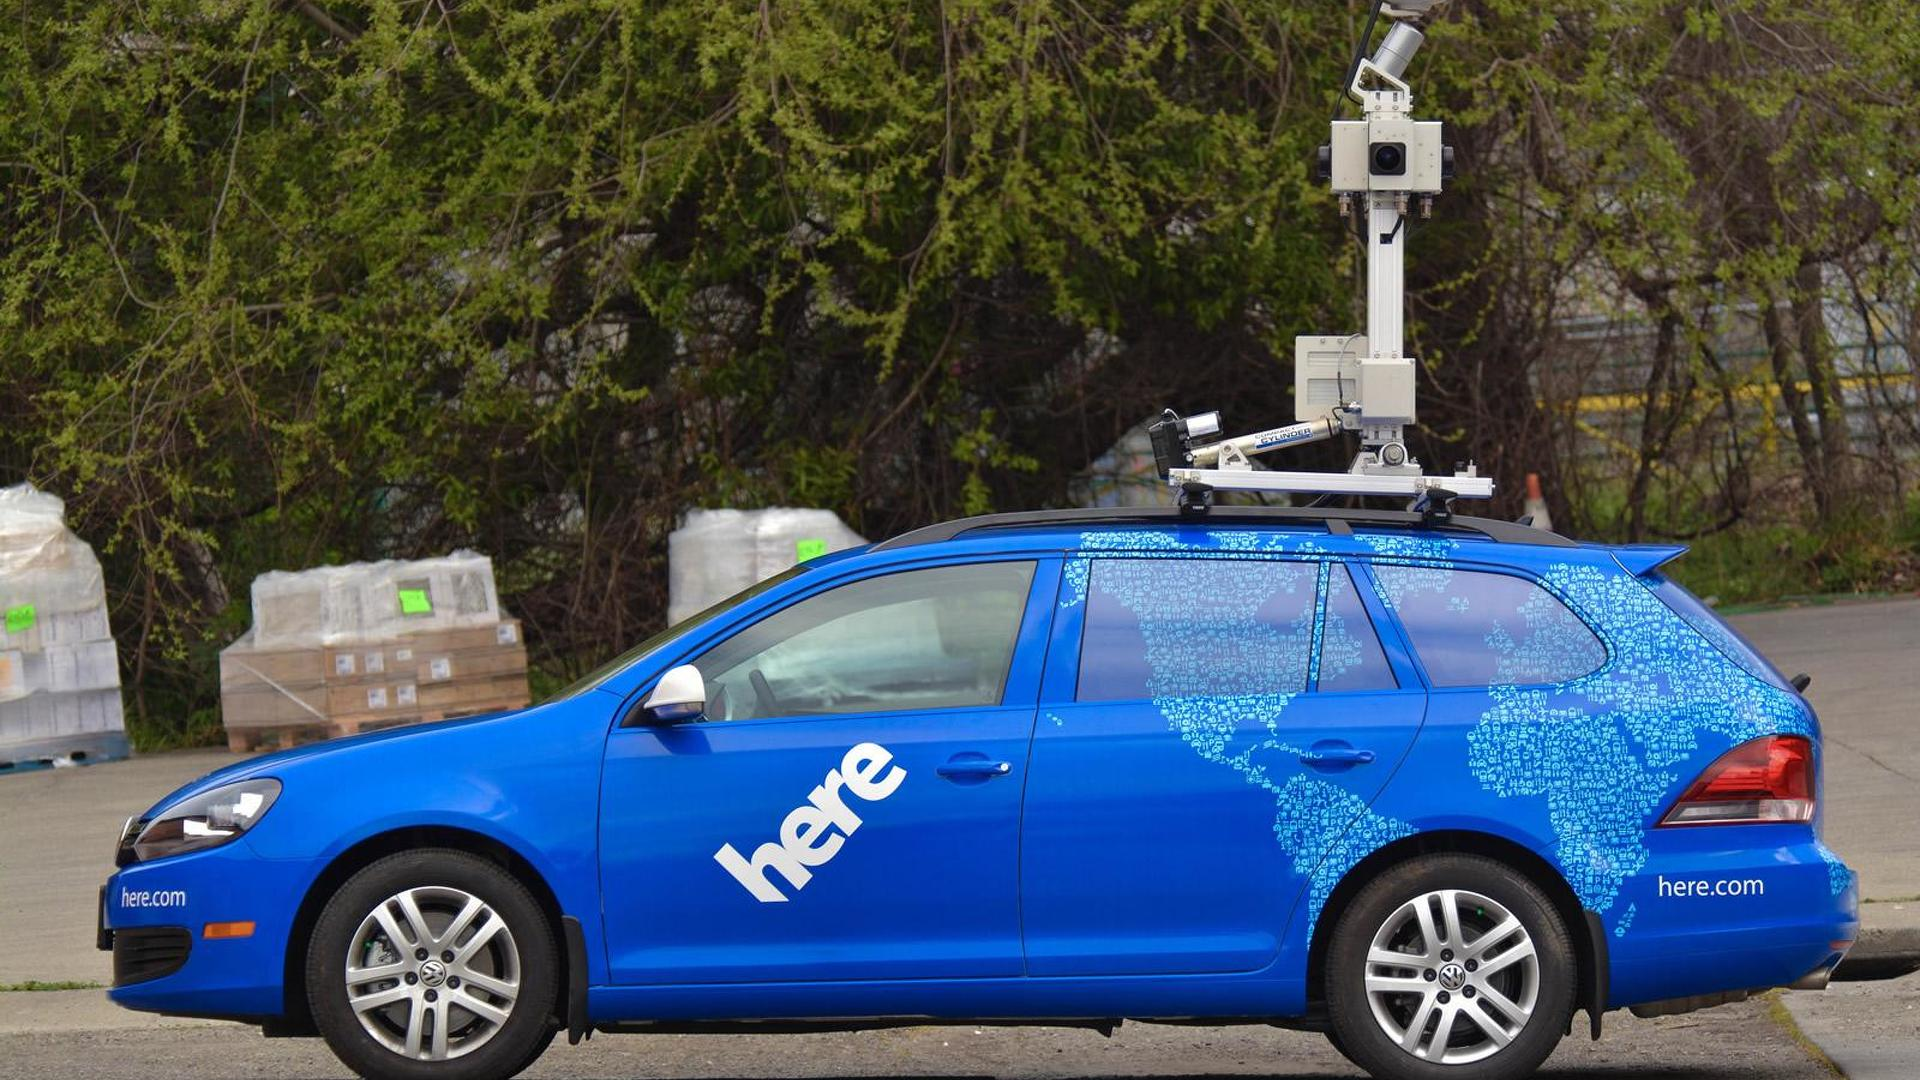 Audi, BMW and Mercedes-Benz to buy Nokia's HERE for $3 billion; announcement due on Monday